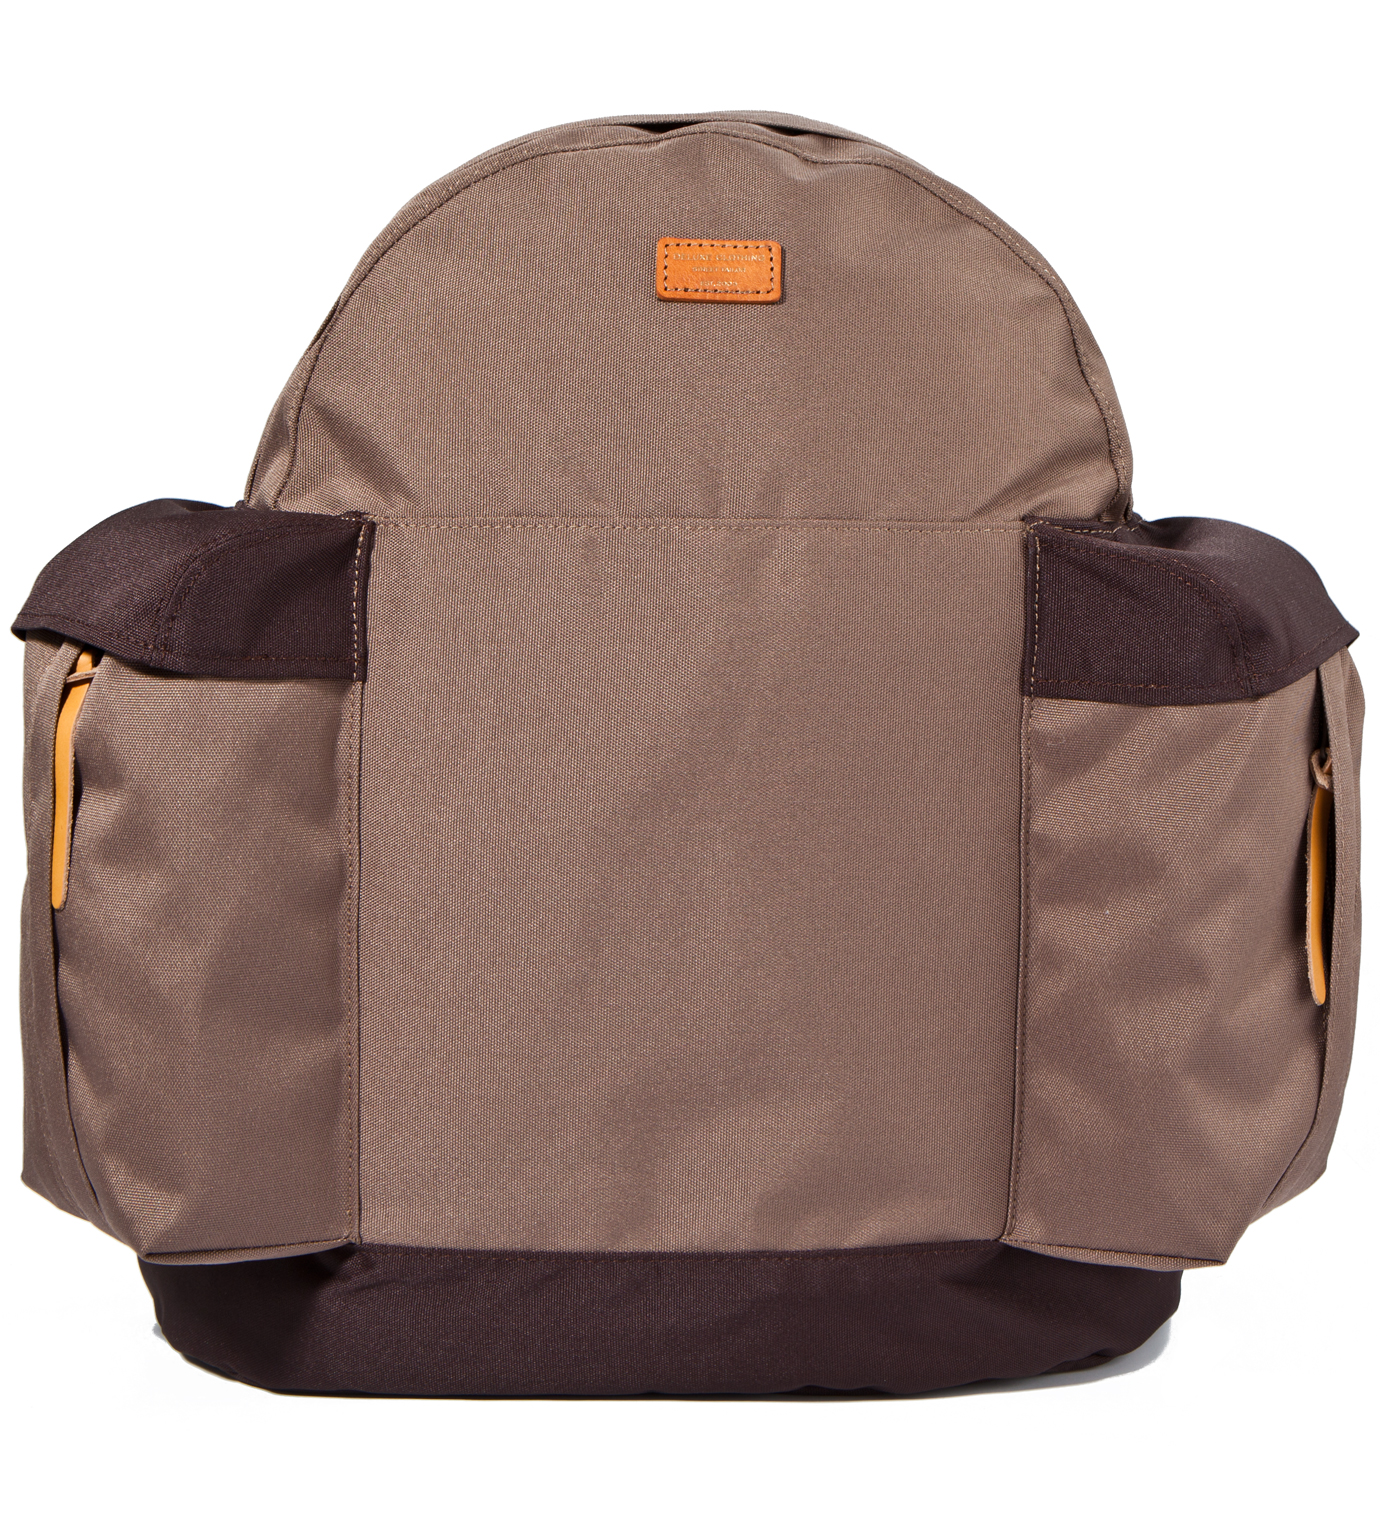 DELUXE Beige Hitcher Backpack